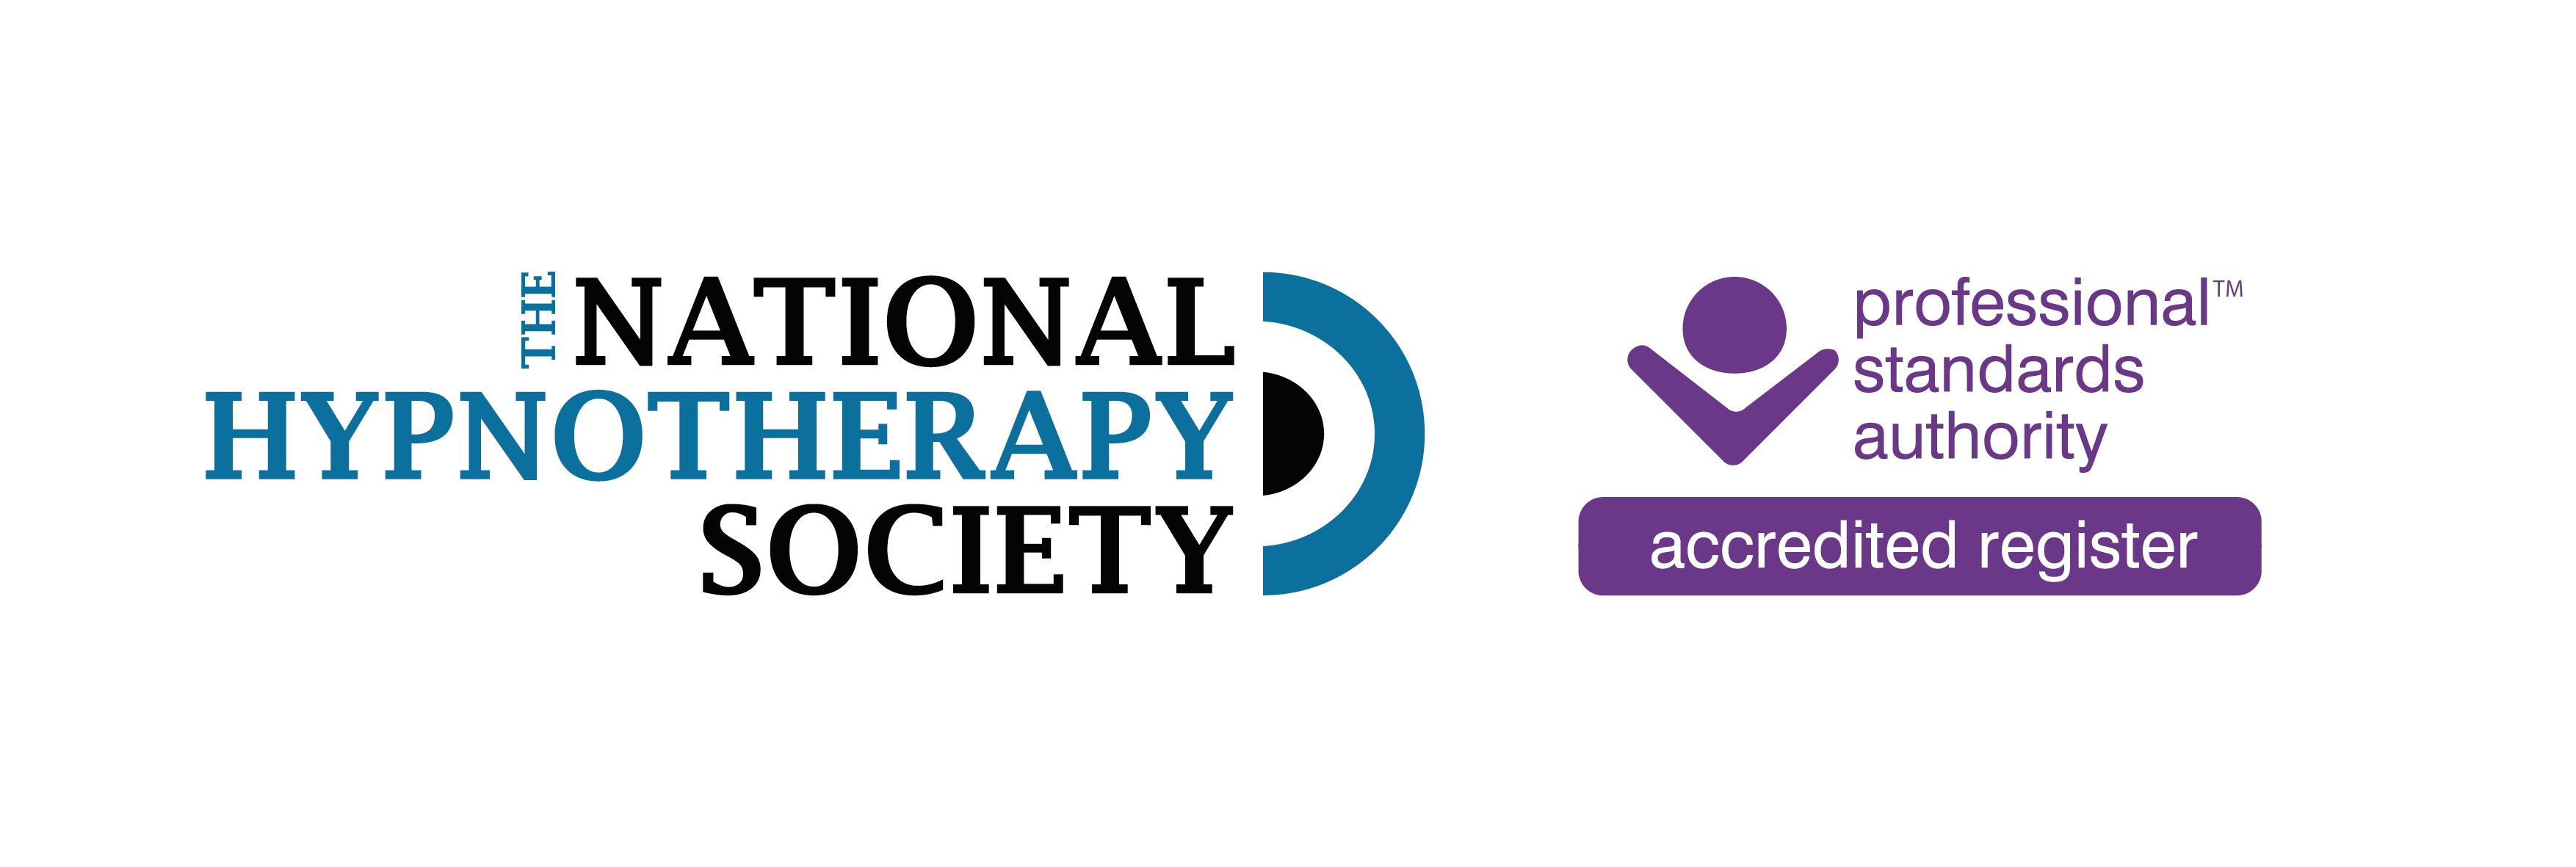 National Hypnotherapy Society accredited course